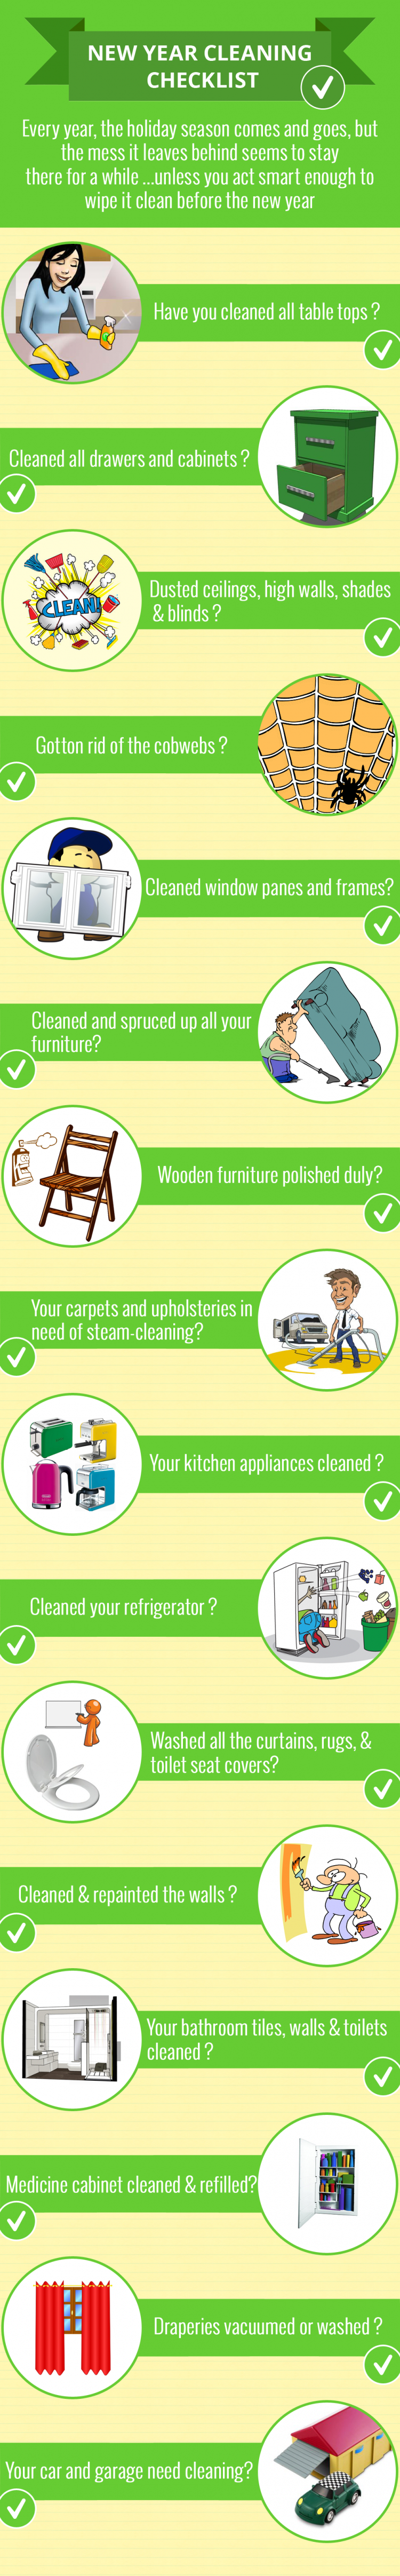 New Year Cleaning Checklist 2014